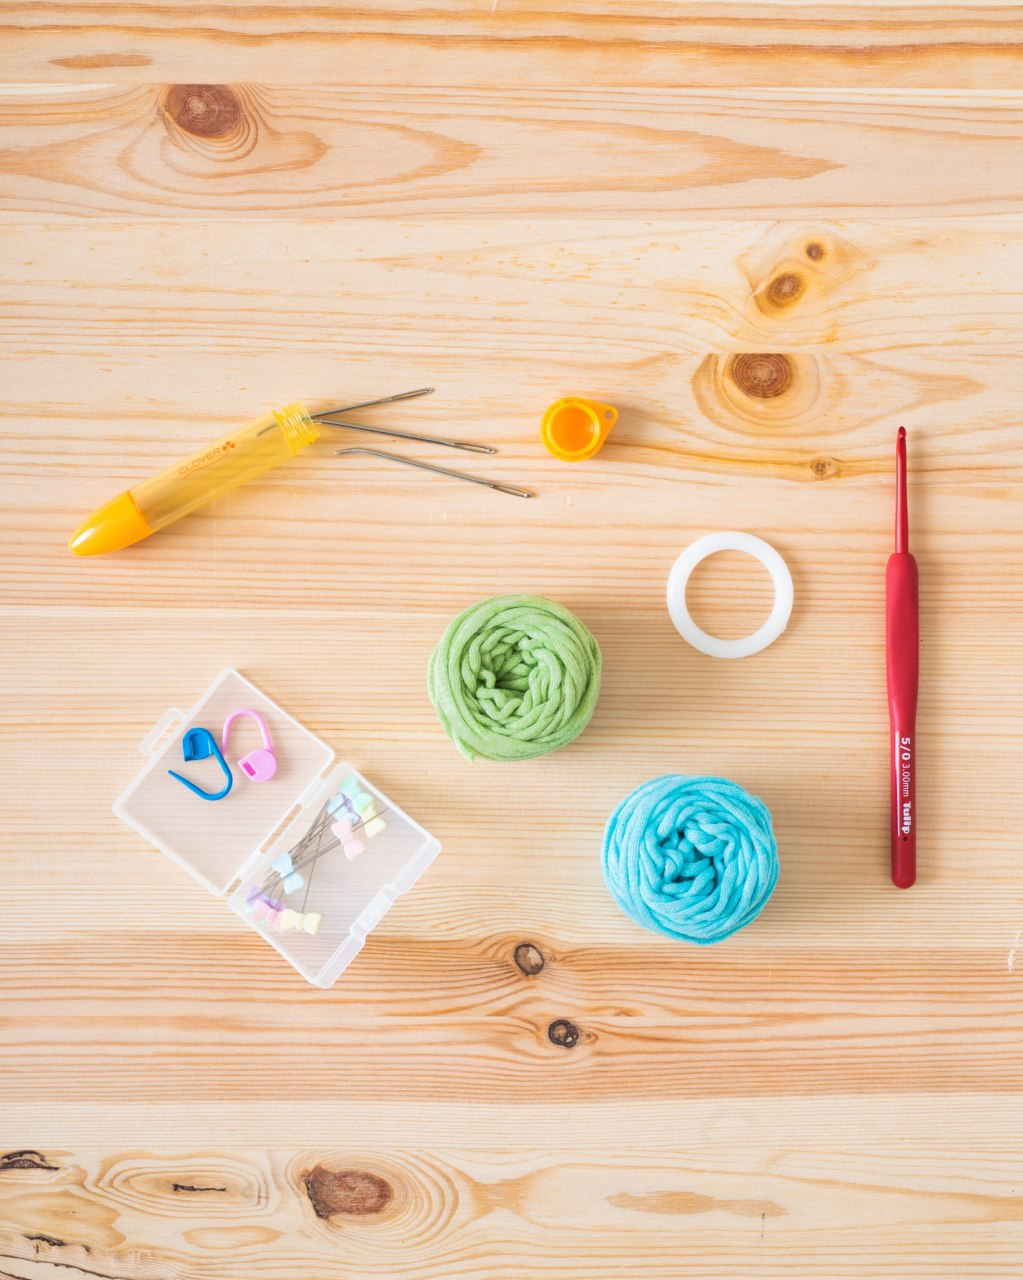 Basic Crochet Tools You Will Need If You're Starting Crochet Today